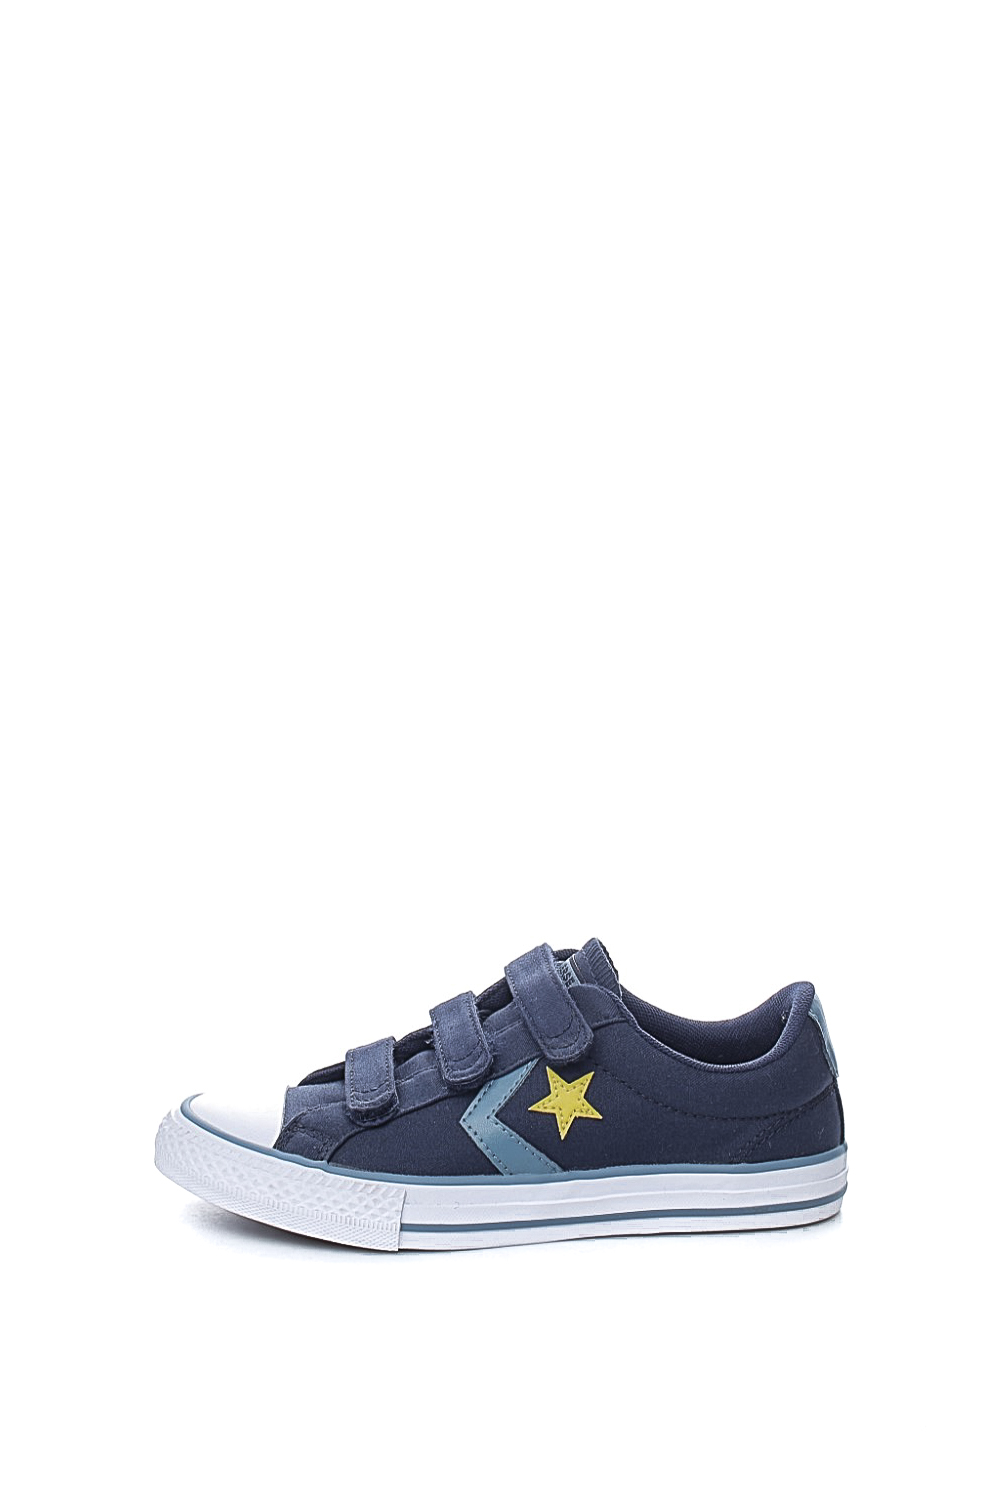 Collective Online CONVERSE – Παιδικά sneakers Star Player 3V Ox CONVERSE  μπλε 7564b4b3d